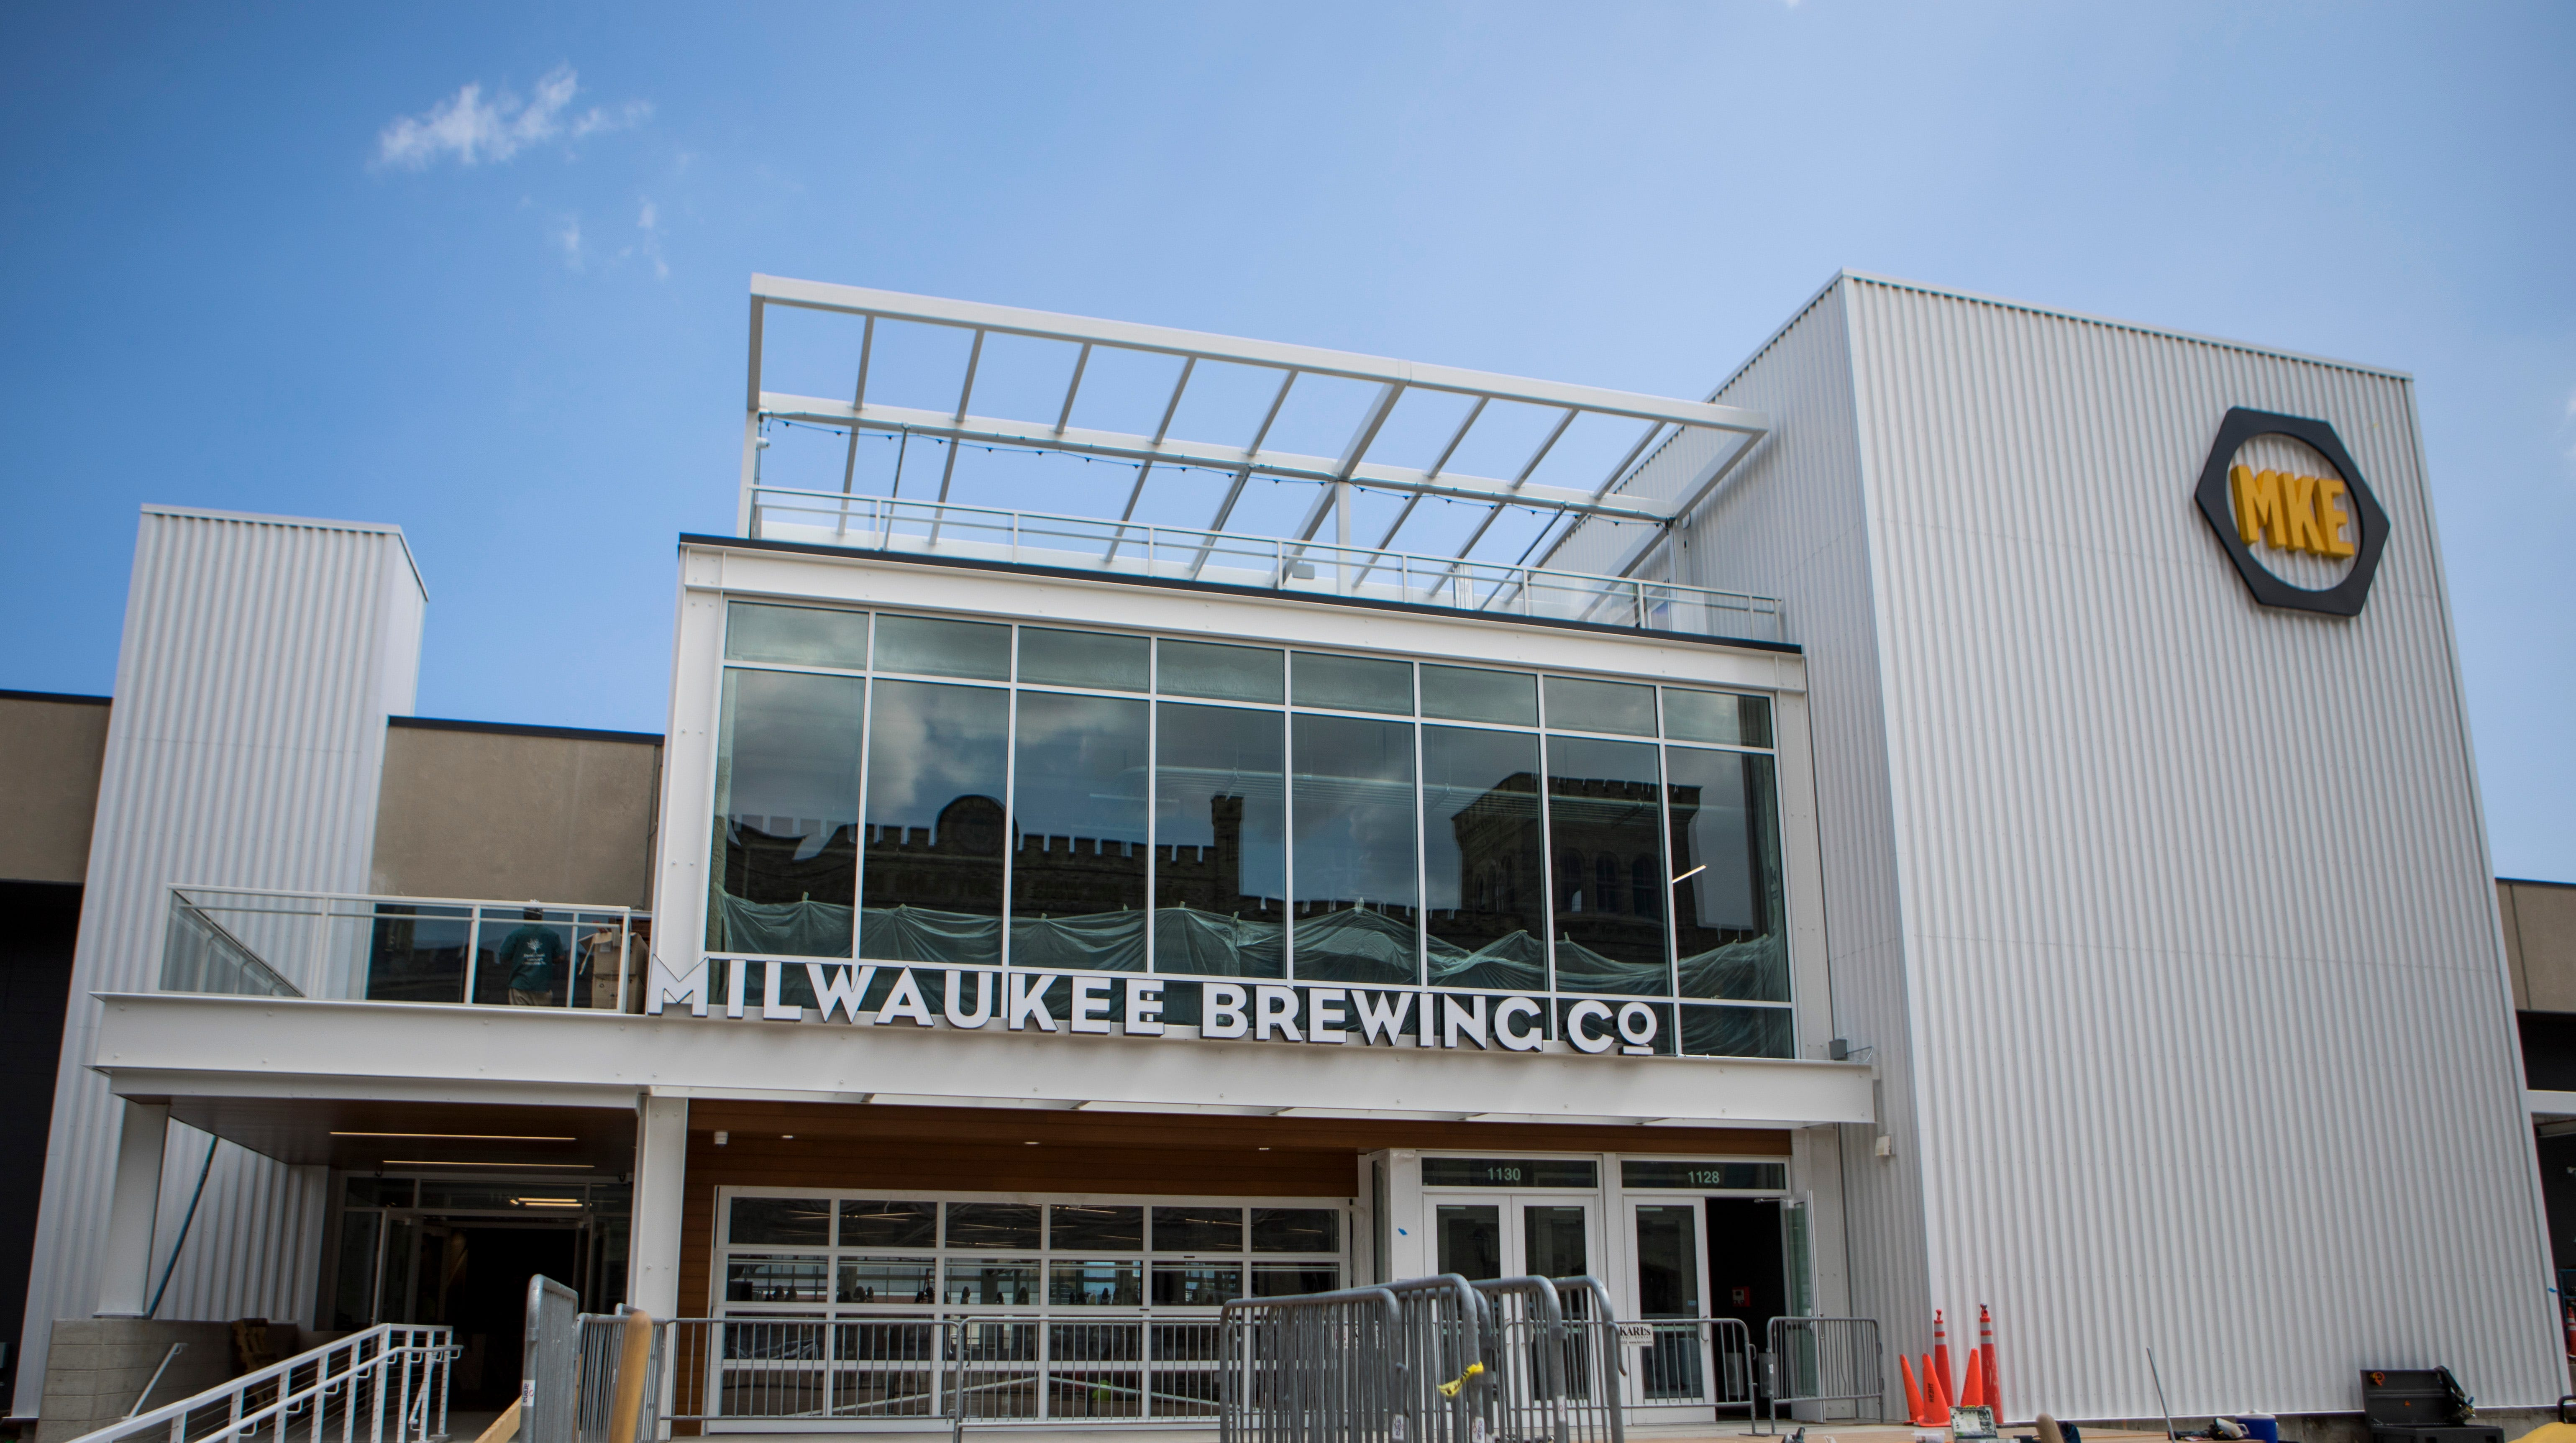 MKE Brewing's new state-of-the-art brewery will bring lots more beer for Milwaukee